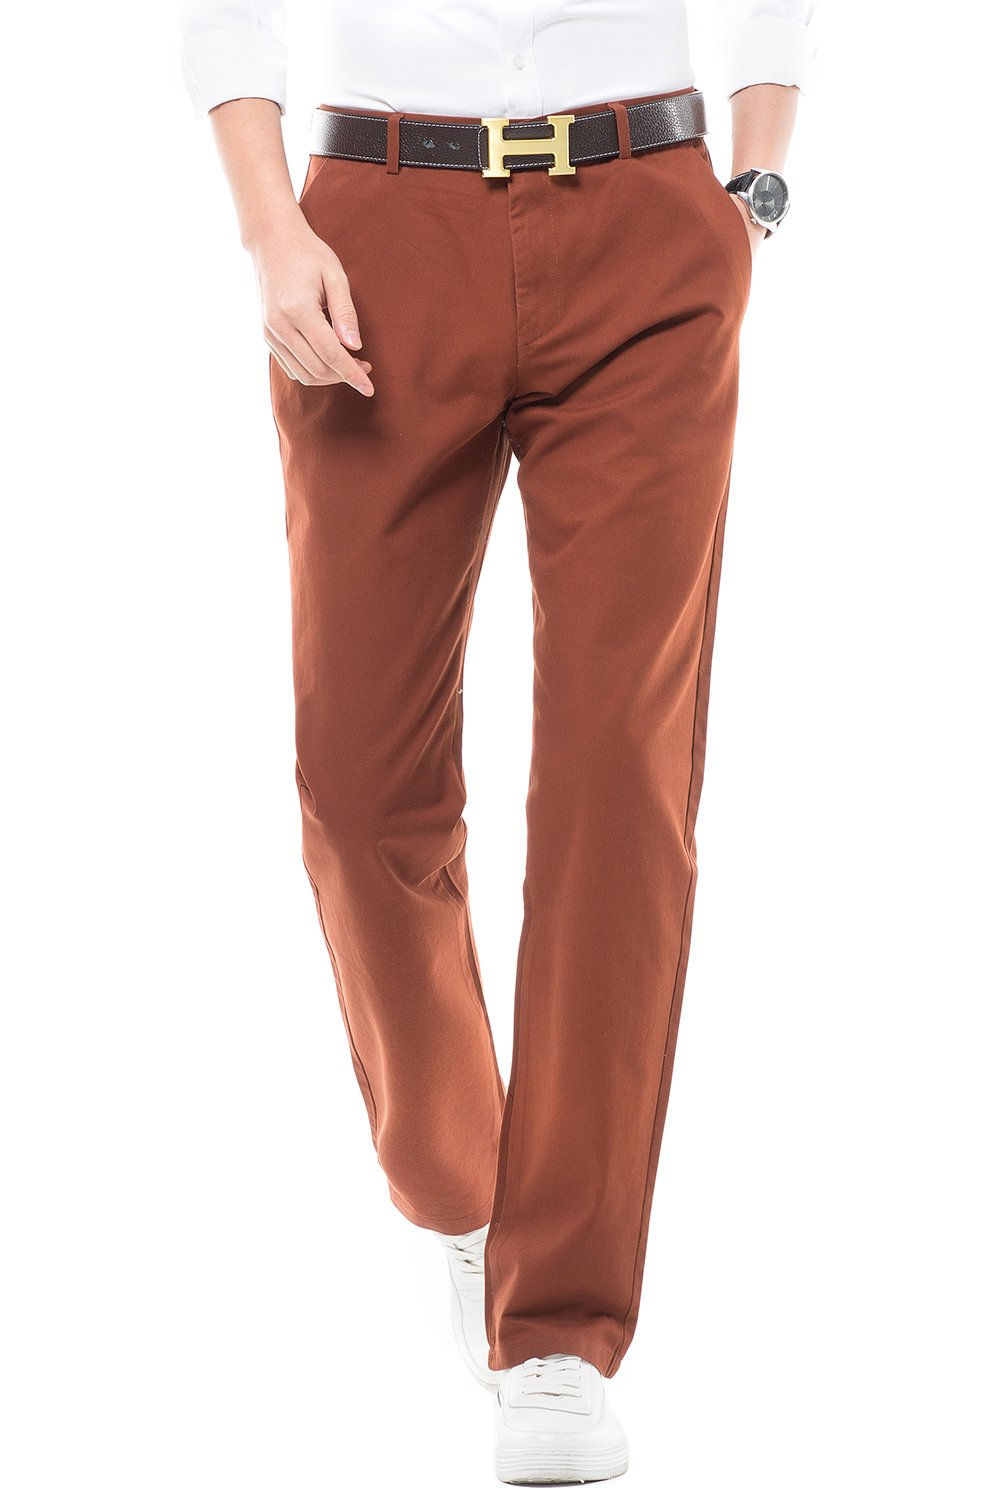 INFLATION Men's Pants Casual 100% Cotton NO Elasticity Straight Trousers CASE ME